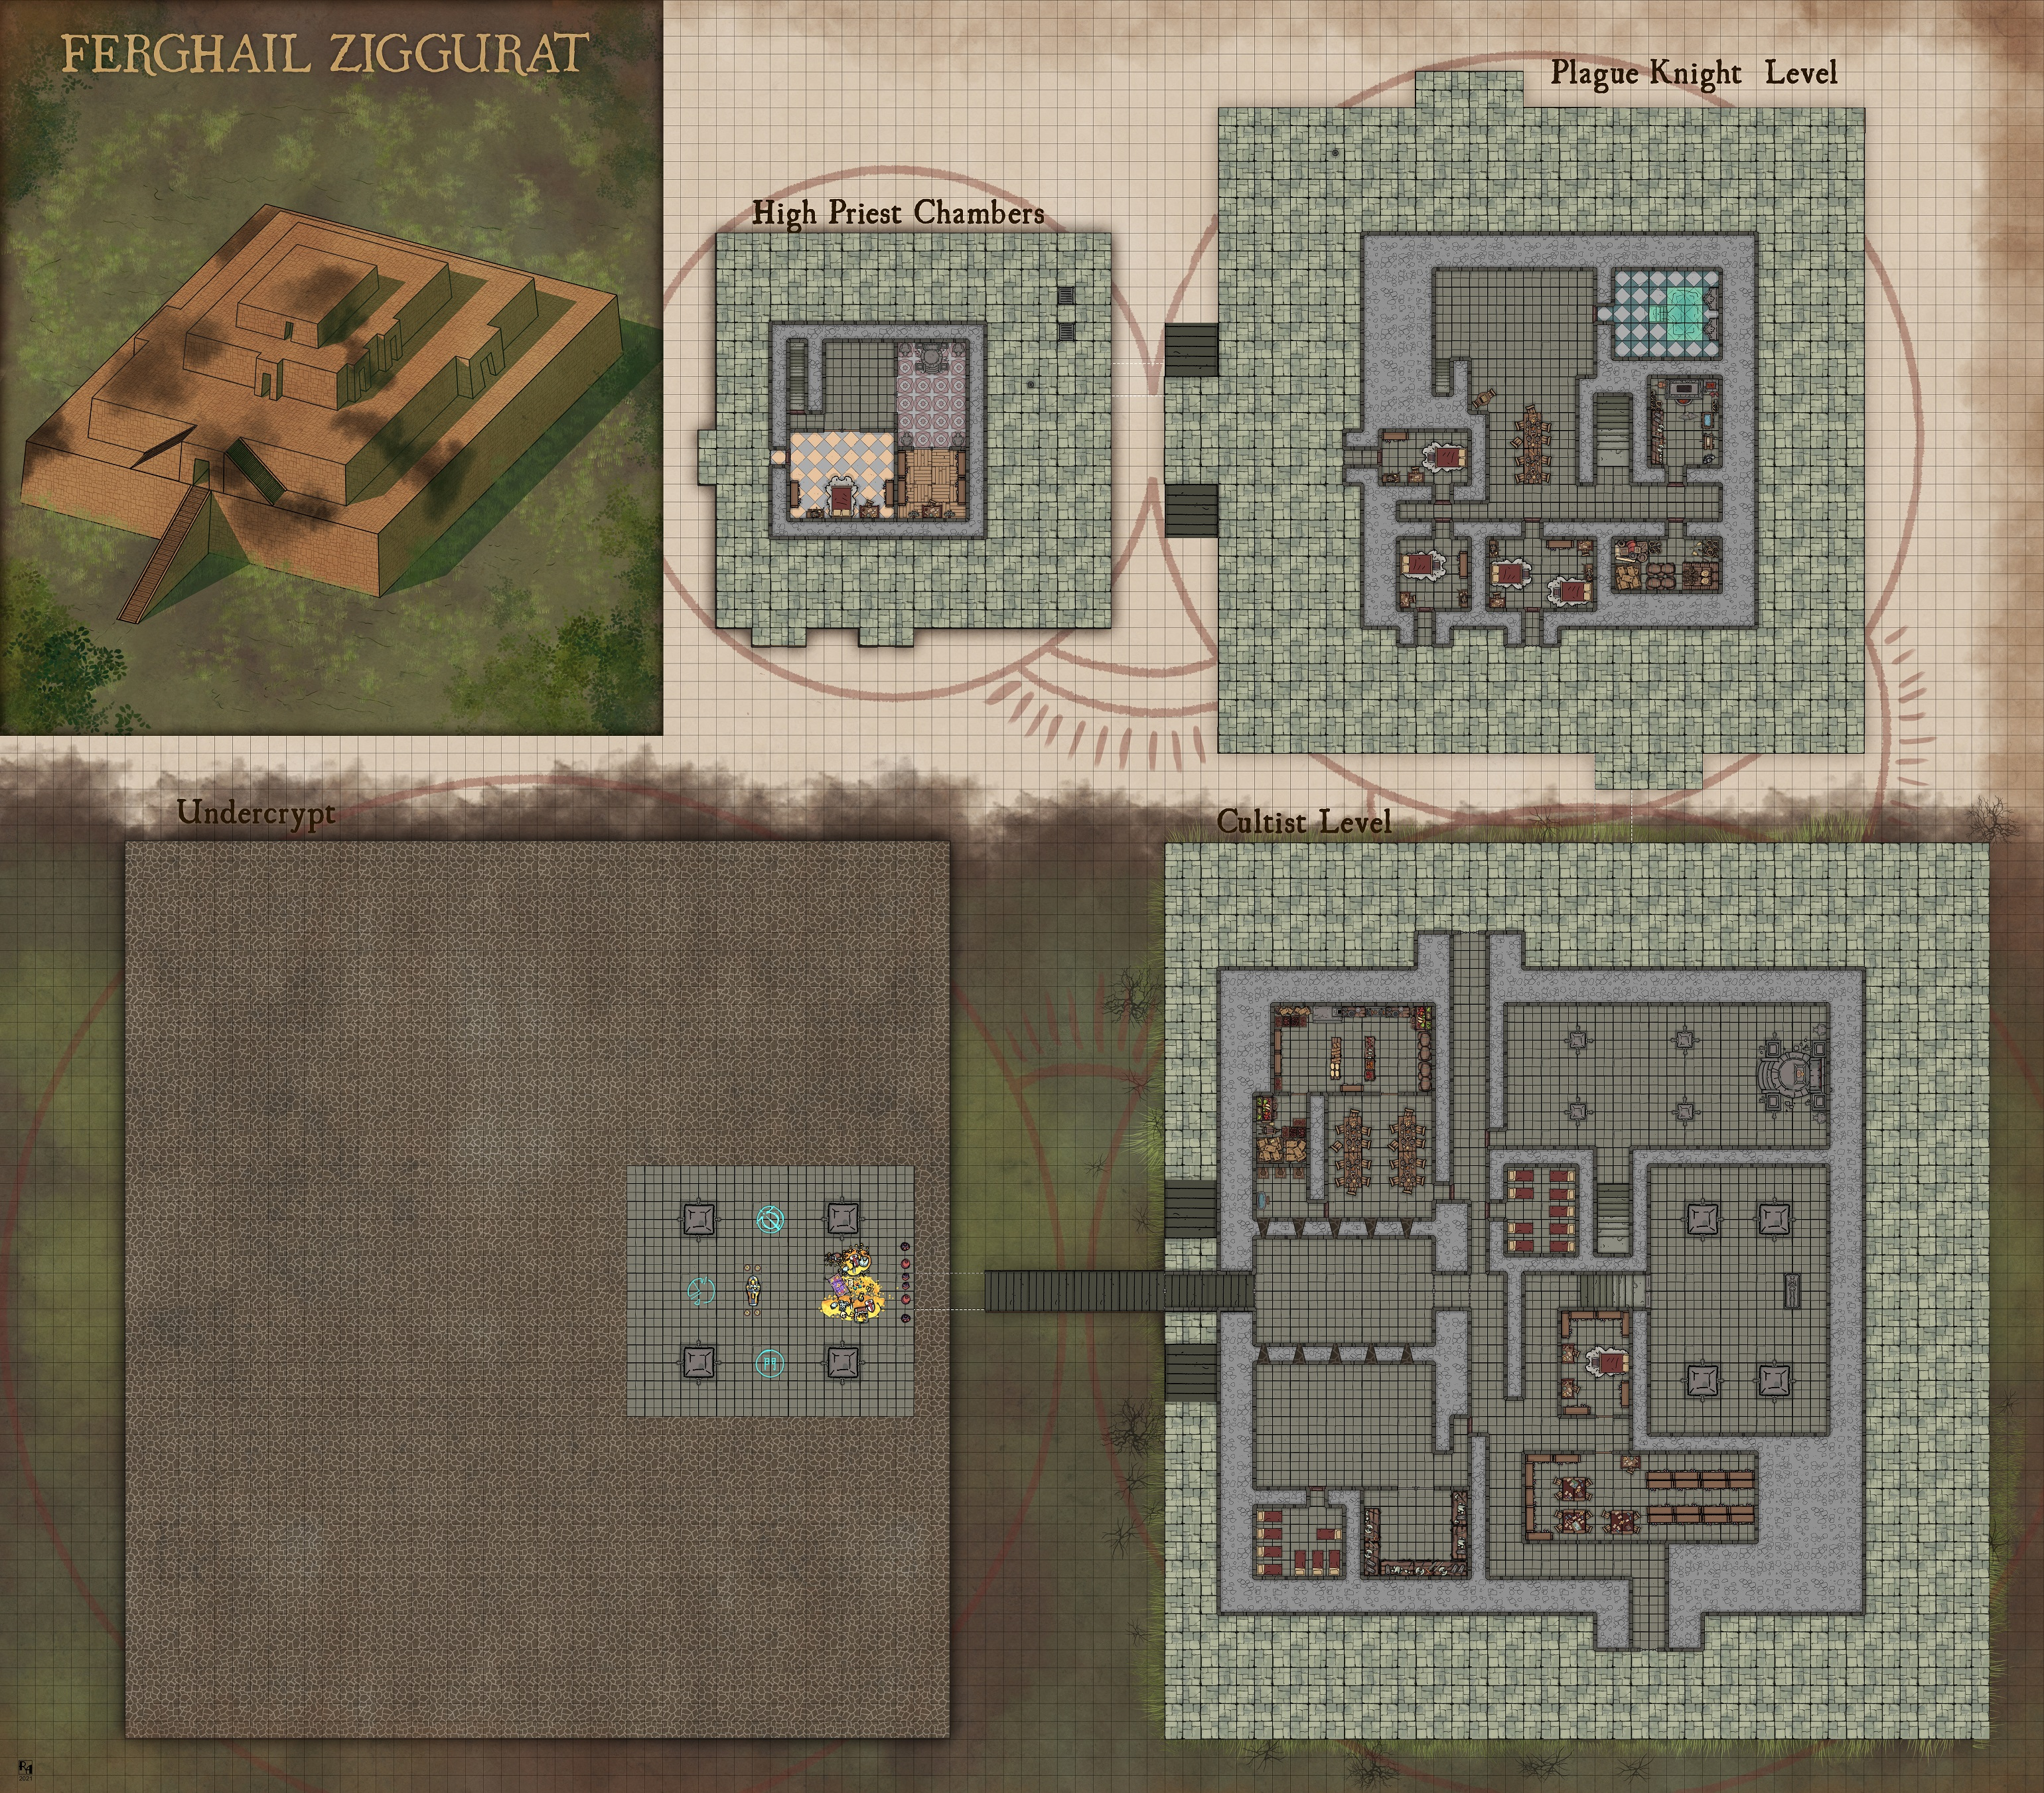 Ferghail Ziggurat 114x100 with 2 minute table LOW res.jpg